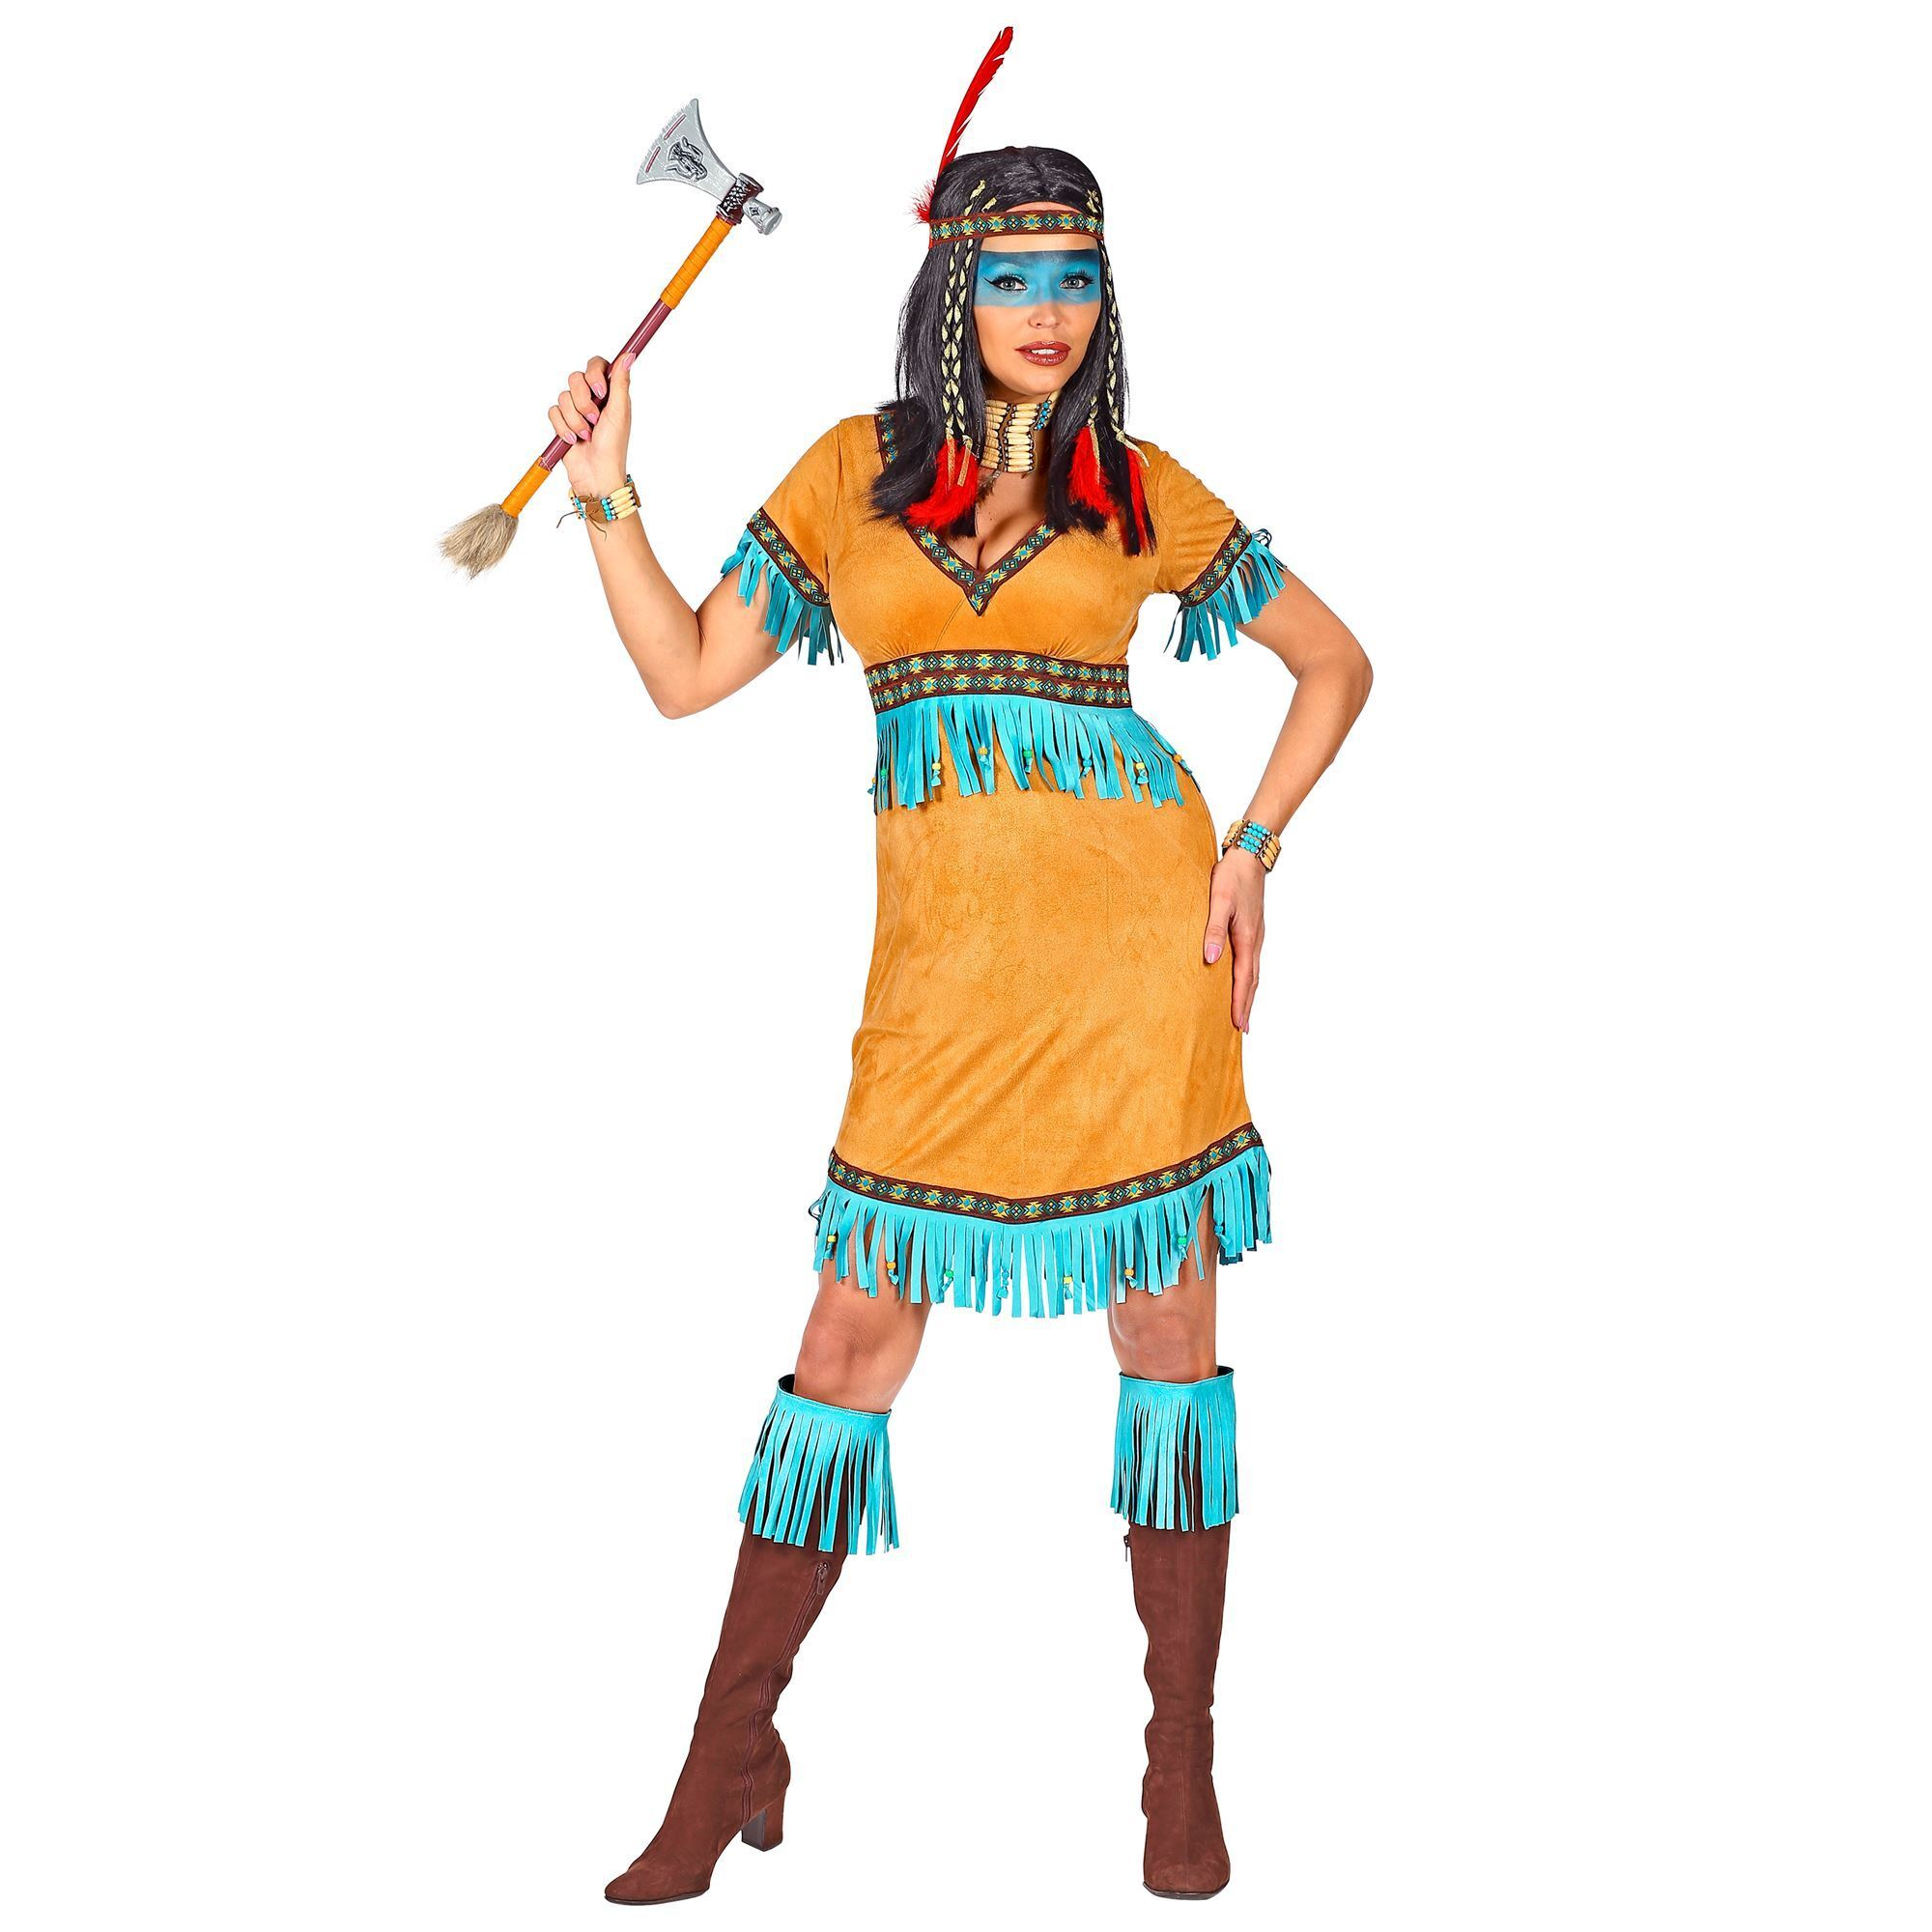 Vrouwen indianen outfit